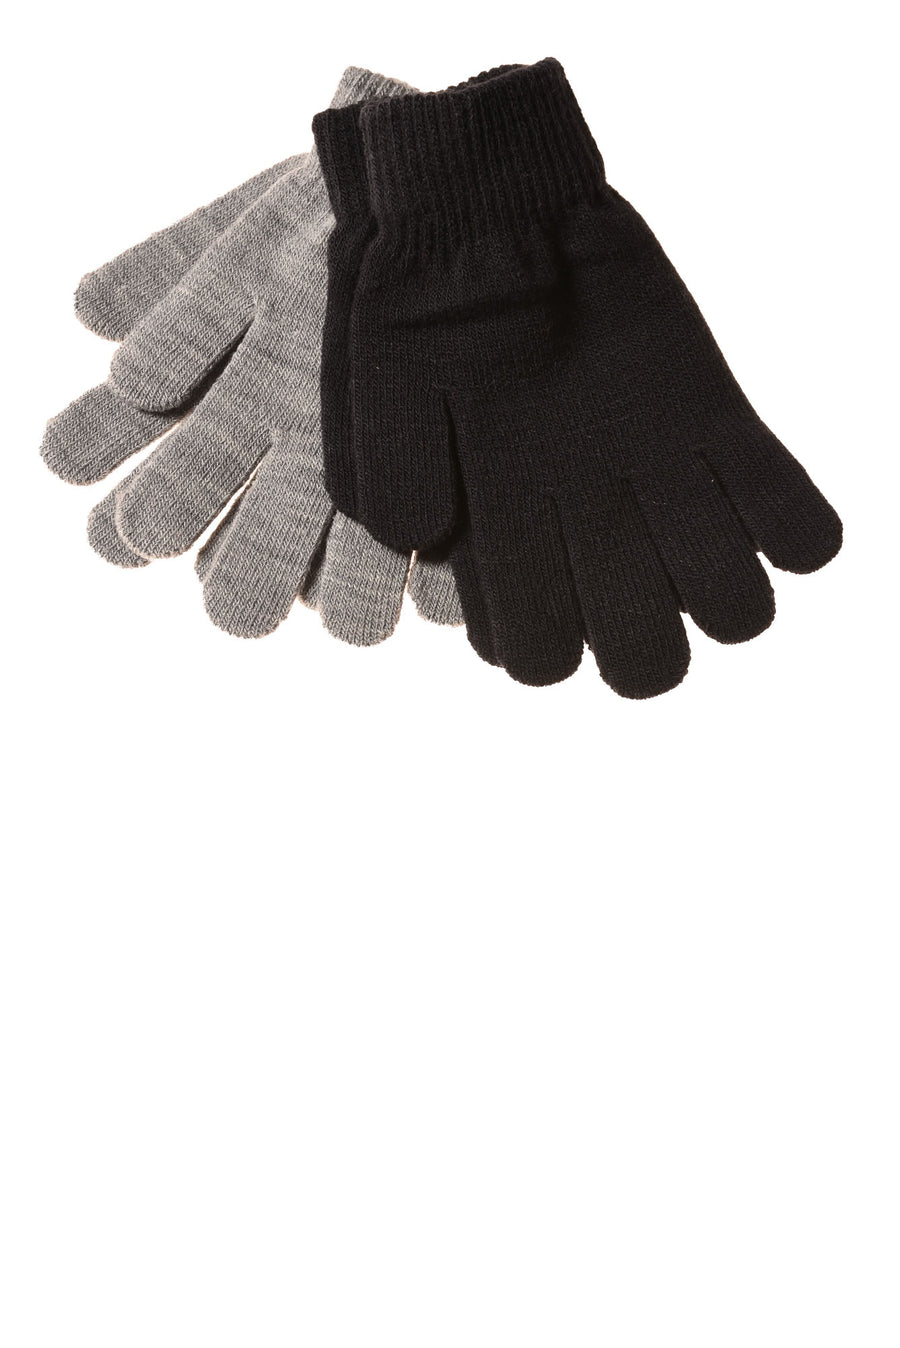 NEW No Brand Women's Gloves One Size Black & Gray